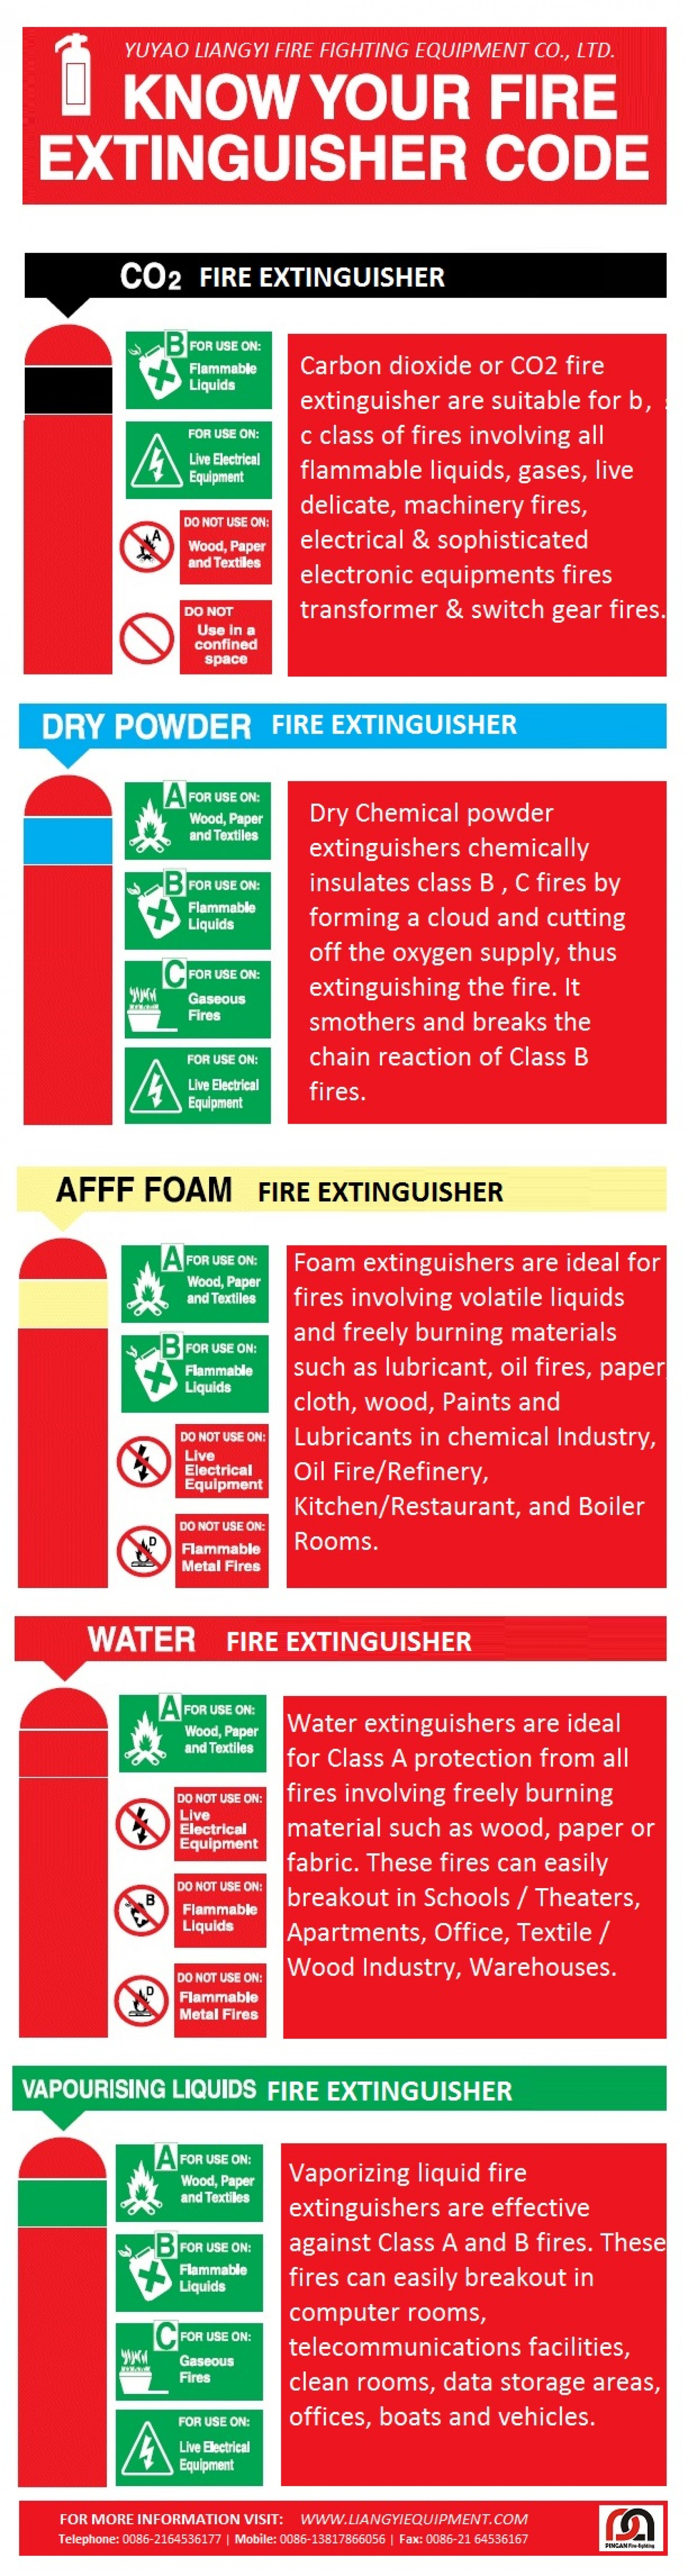 Different Fire Extinguisher Types And Specifications | Visual.ly